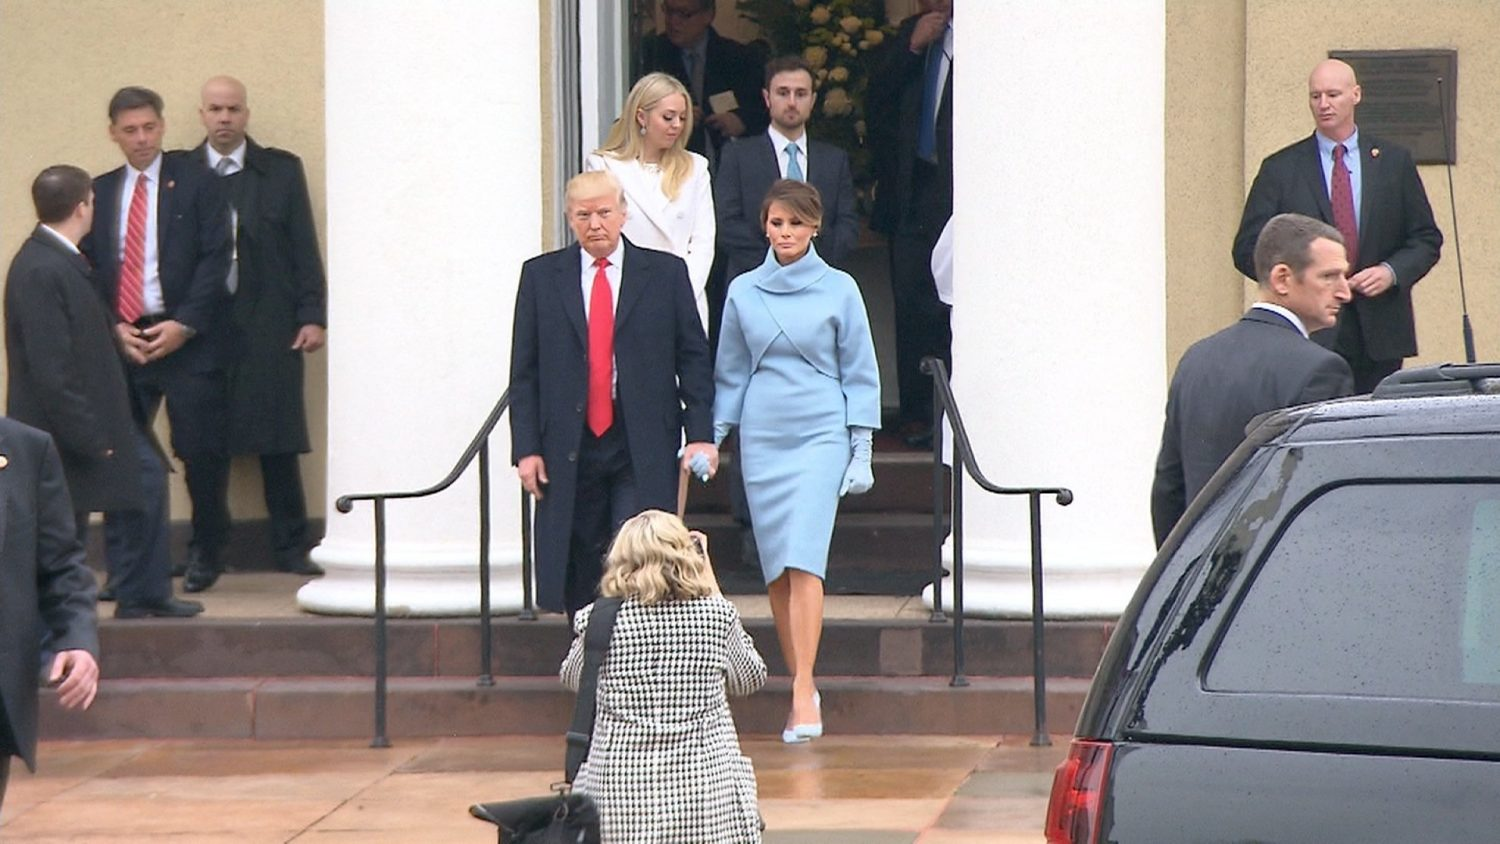 Donald Trump and Melania Trump leaves church to White House